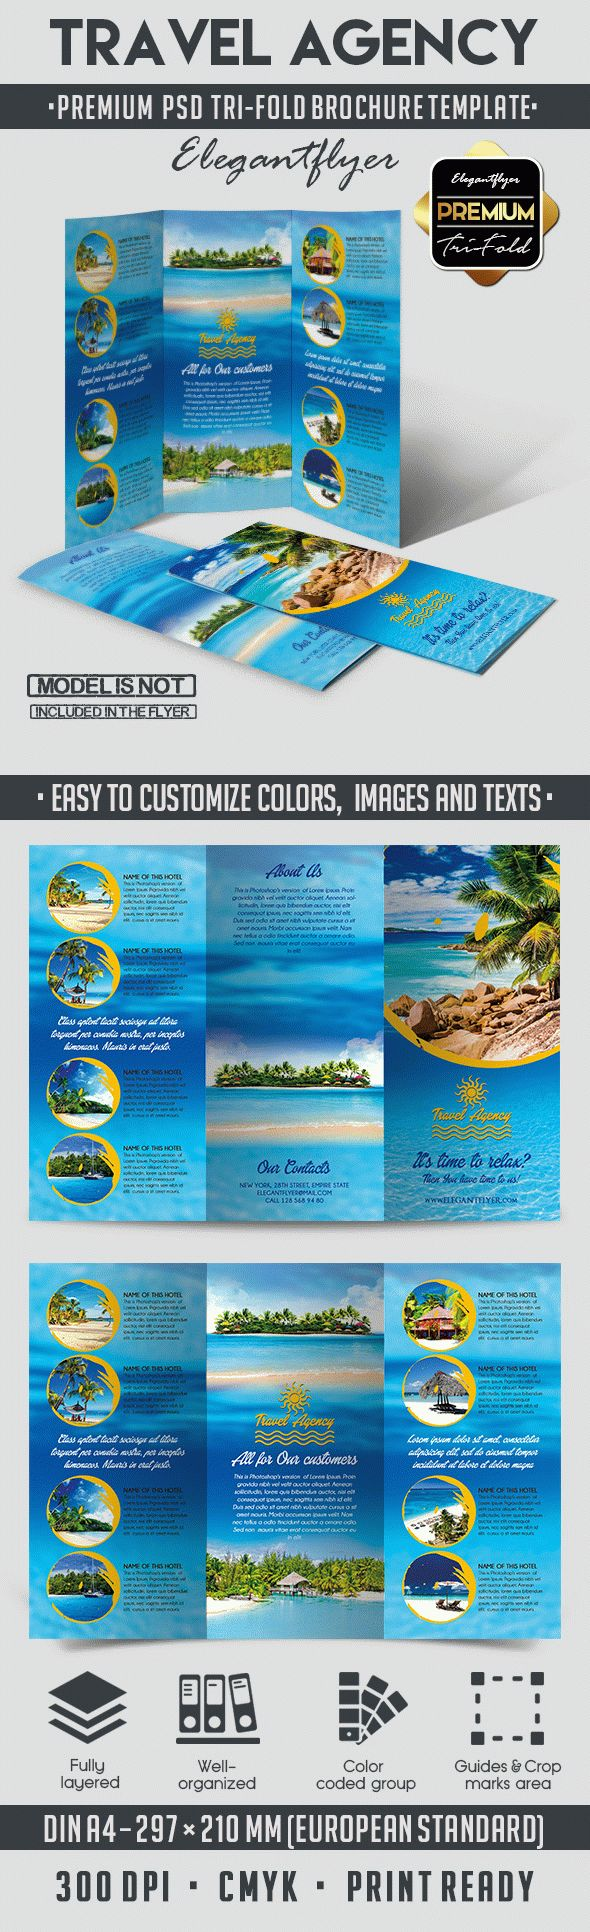 Travel Agency – Tri-Fold Brochure PSD Template